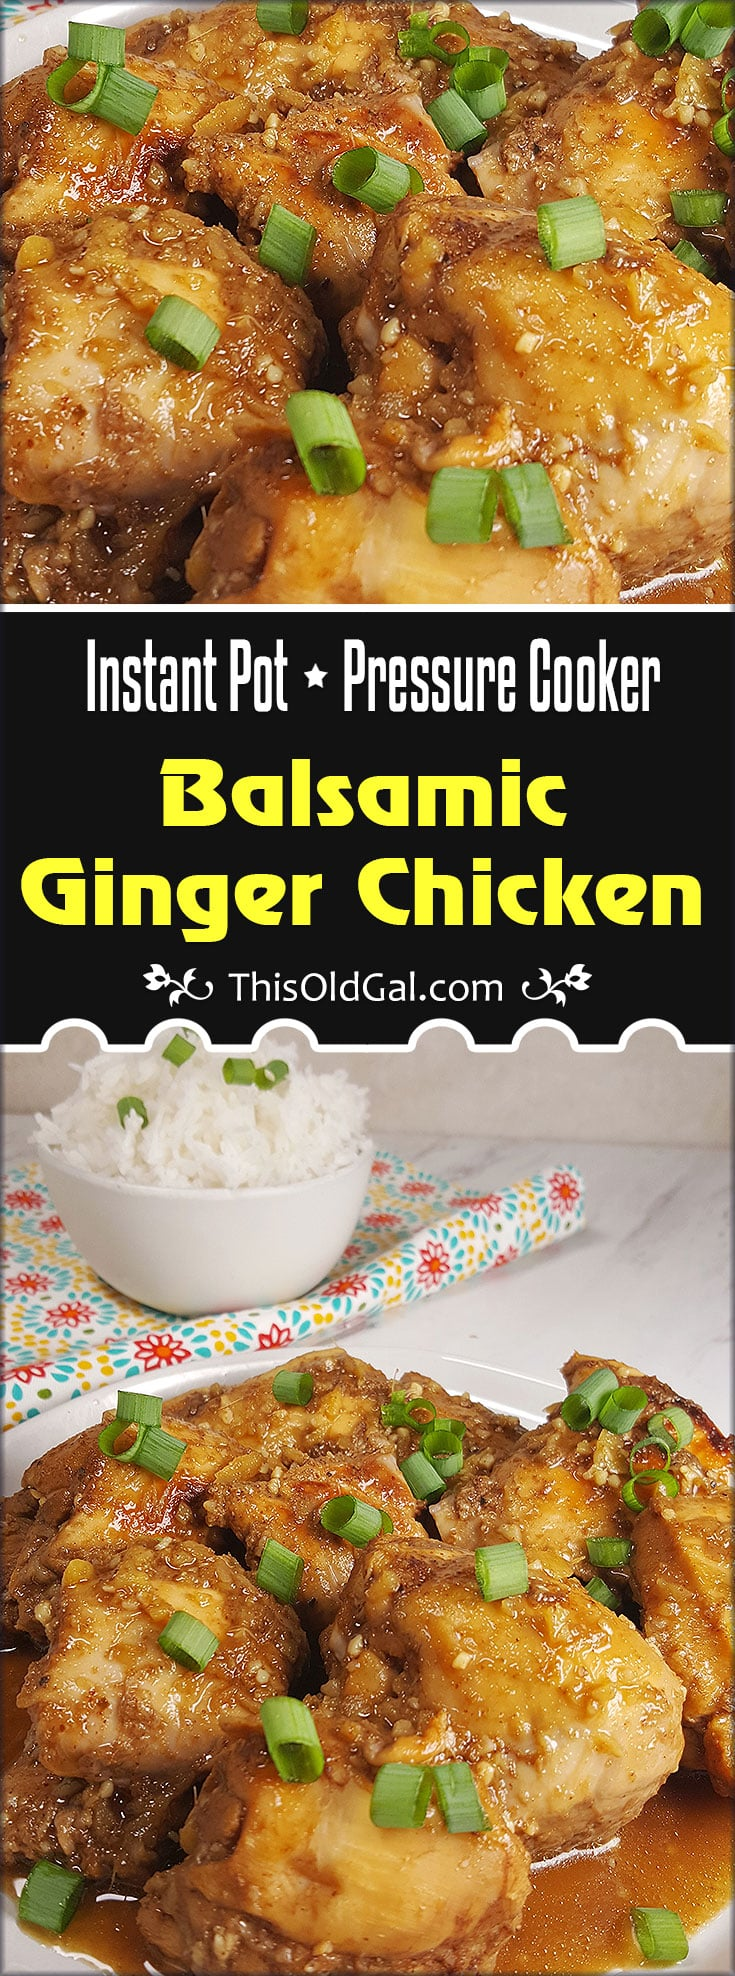 Pressure Cooker Balsamic Ginger Chicken Video This Old Gal